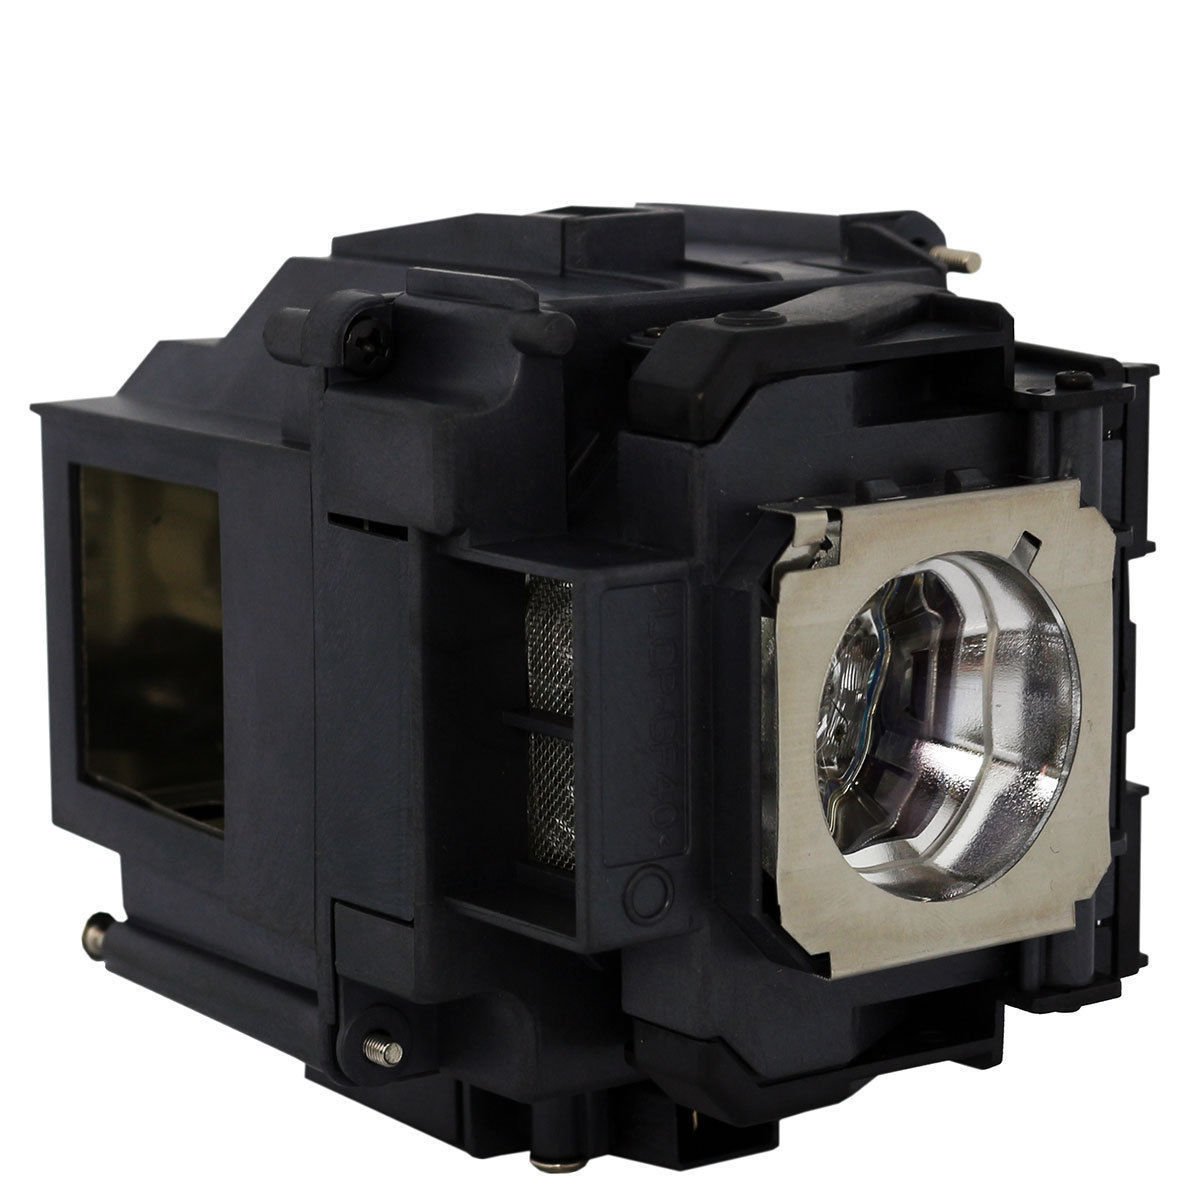 Projector Lamp Bulb ELPLP76 V13H010L76 for Epson EB-G6900WU EB-G6750WU EB-G6550WU EB-G6250W EB-G6050W EB-G6350 With Housing osram lamp housing for epson v11h369020 projector dlp lcd bulb